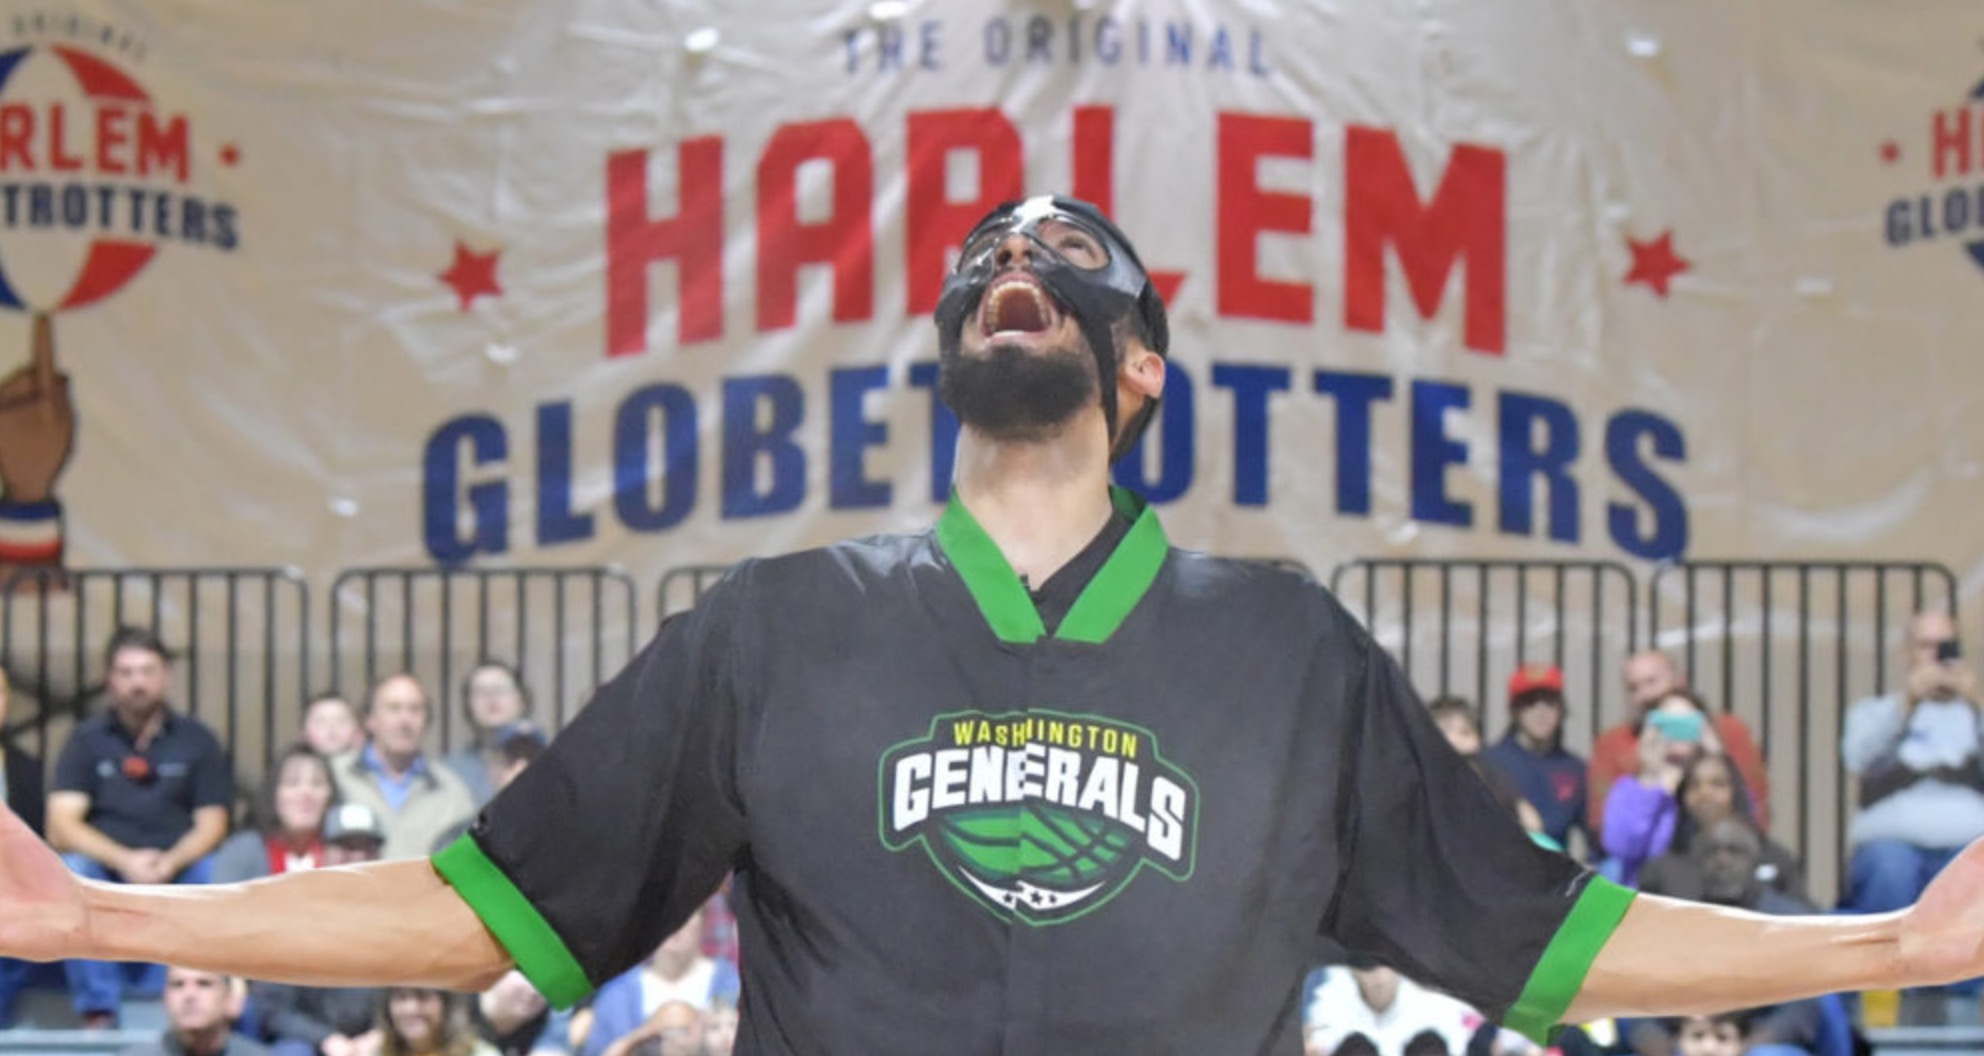 I Was The Captain Of The Team That Loses To The Globetrotters Every Night